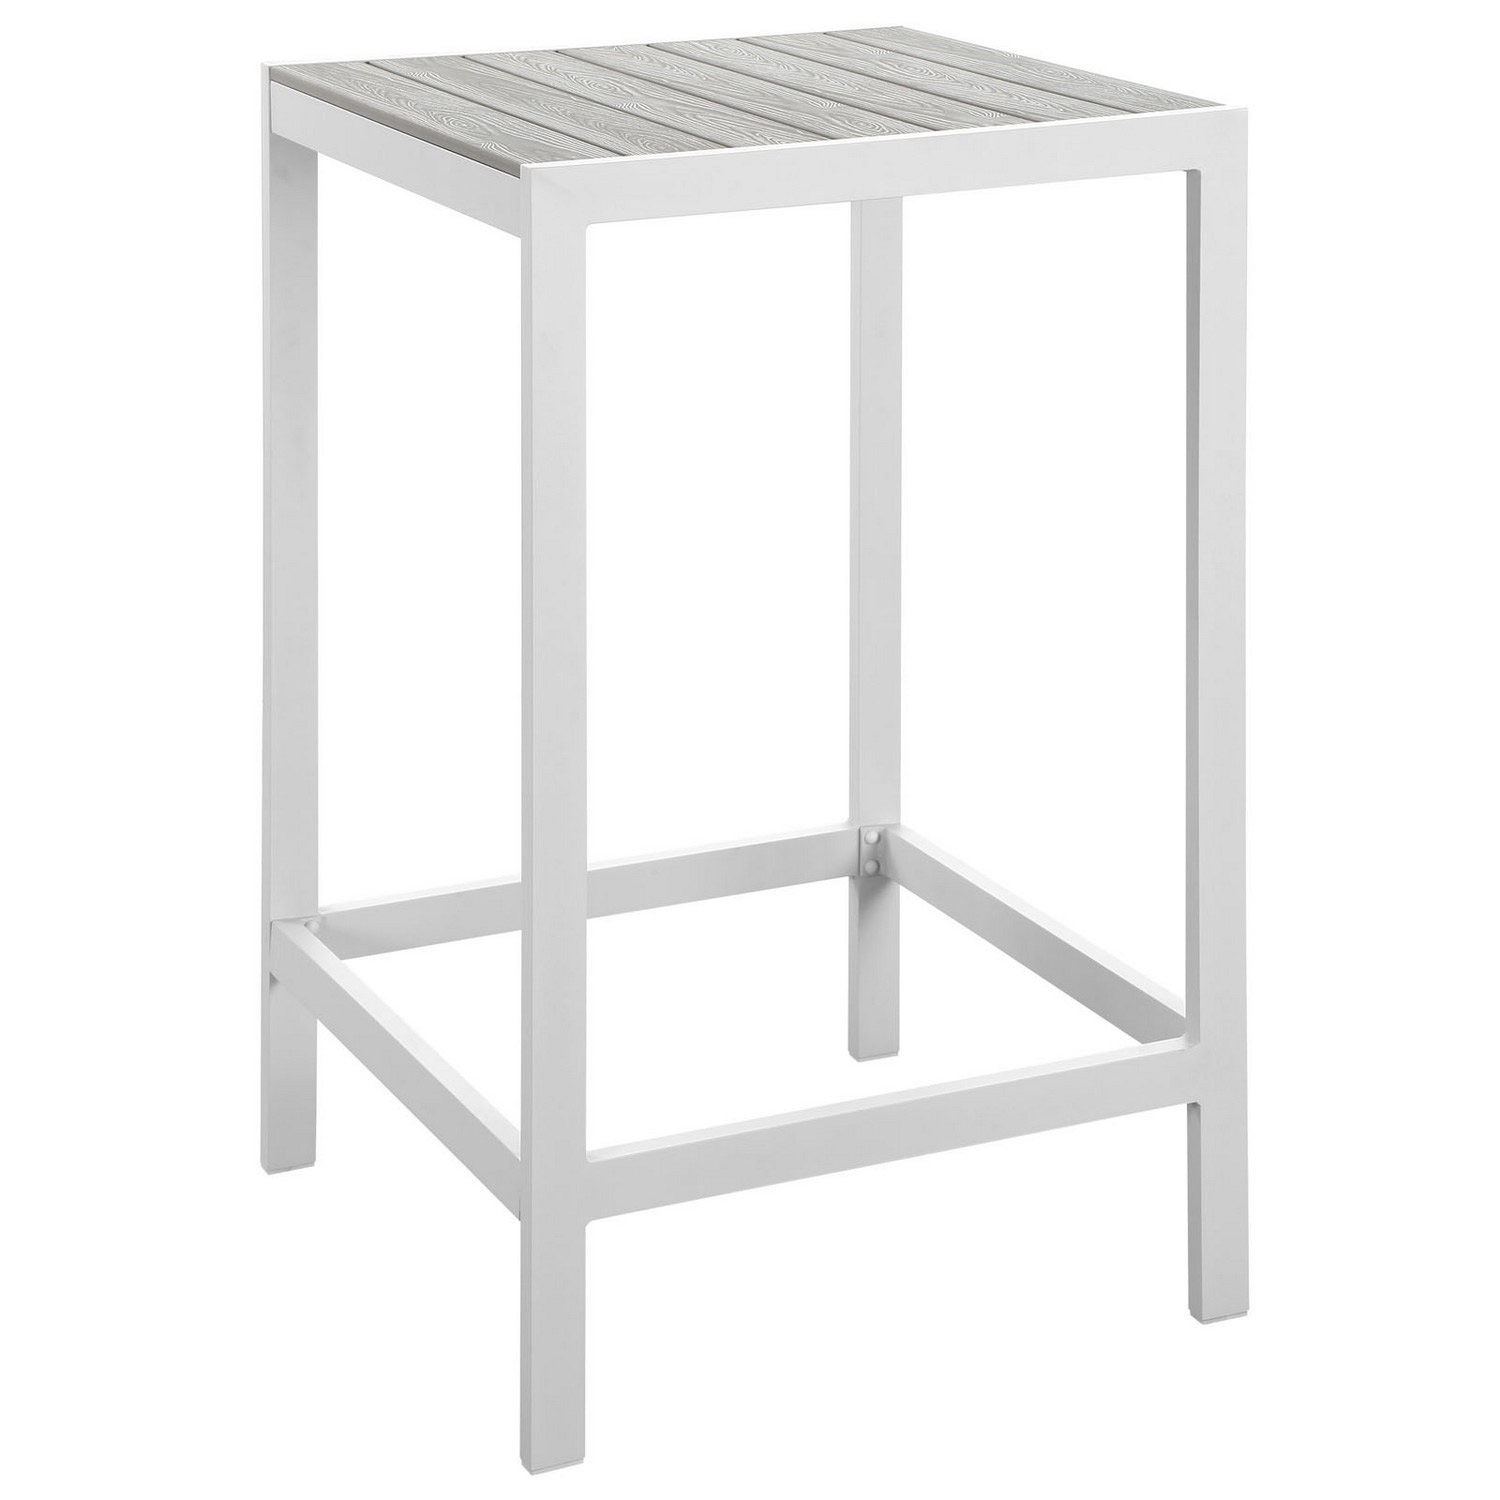 Modway Maine Outdoor Patio Bar Table - White/Light Gray